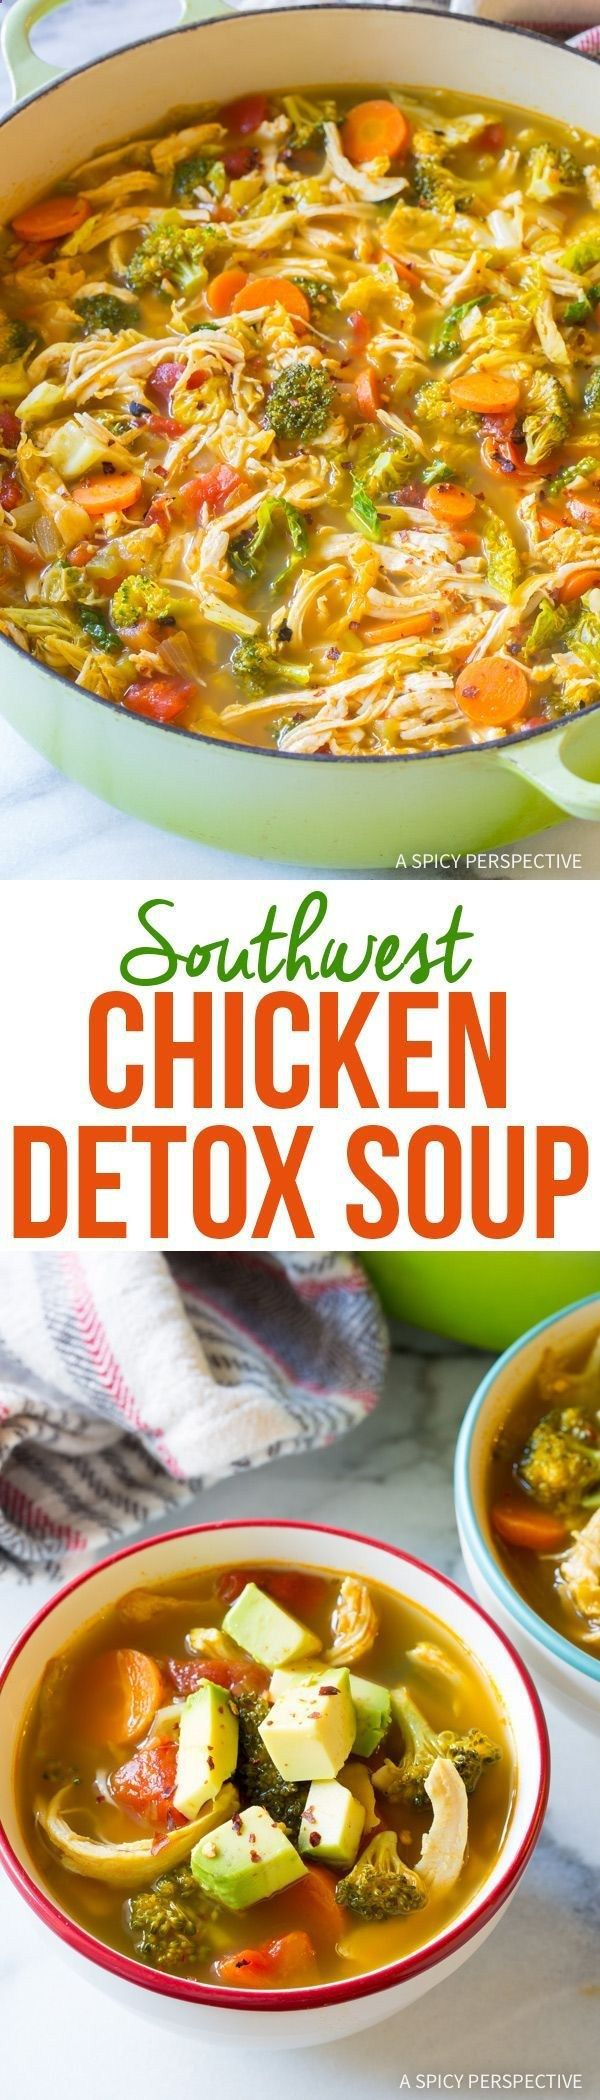 Southwest Chicken Detox Soup Recipe - A fabulous healthy low-fat, low-carb, gluten-free soup, with tons of flavor! This cleansing soup packs a punch. skinny detox soup